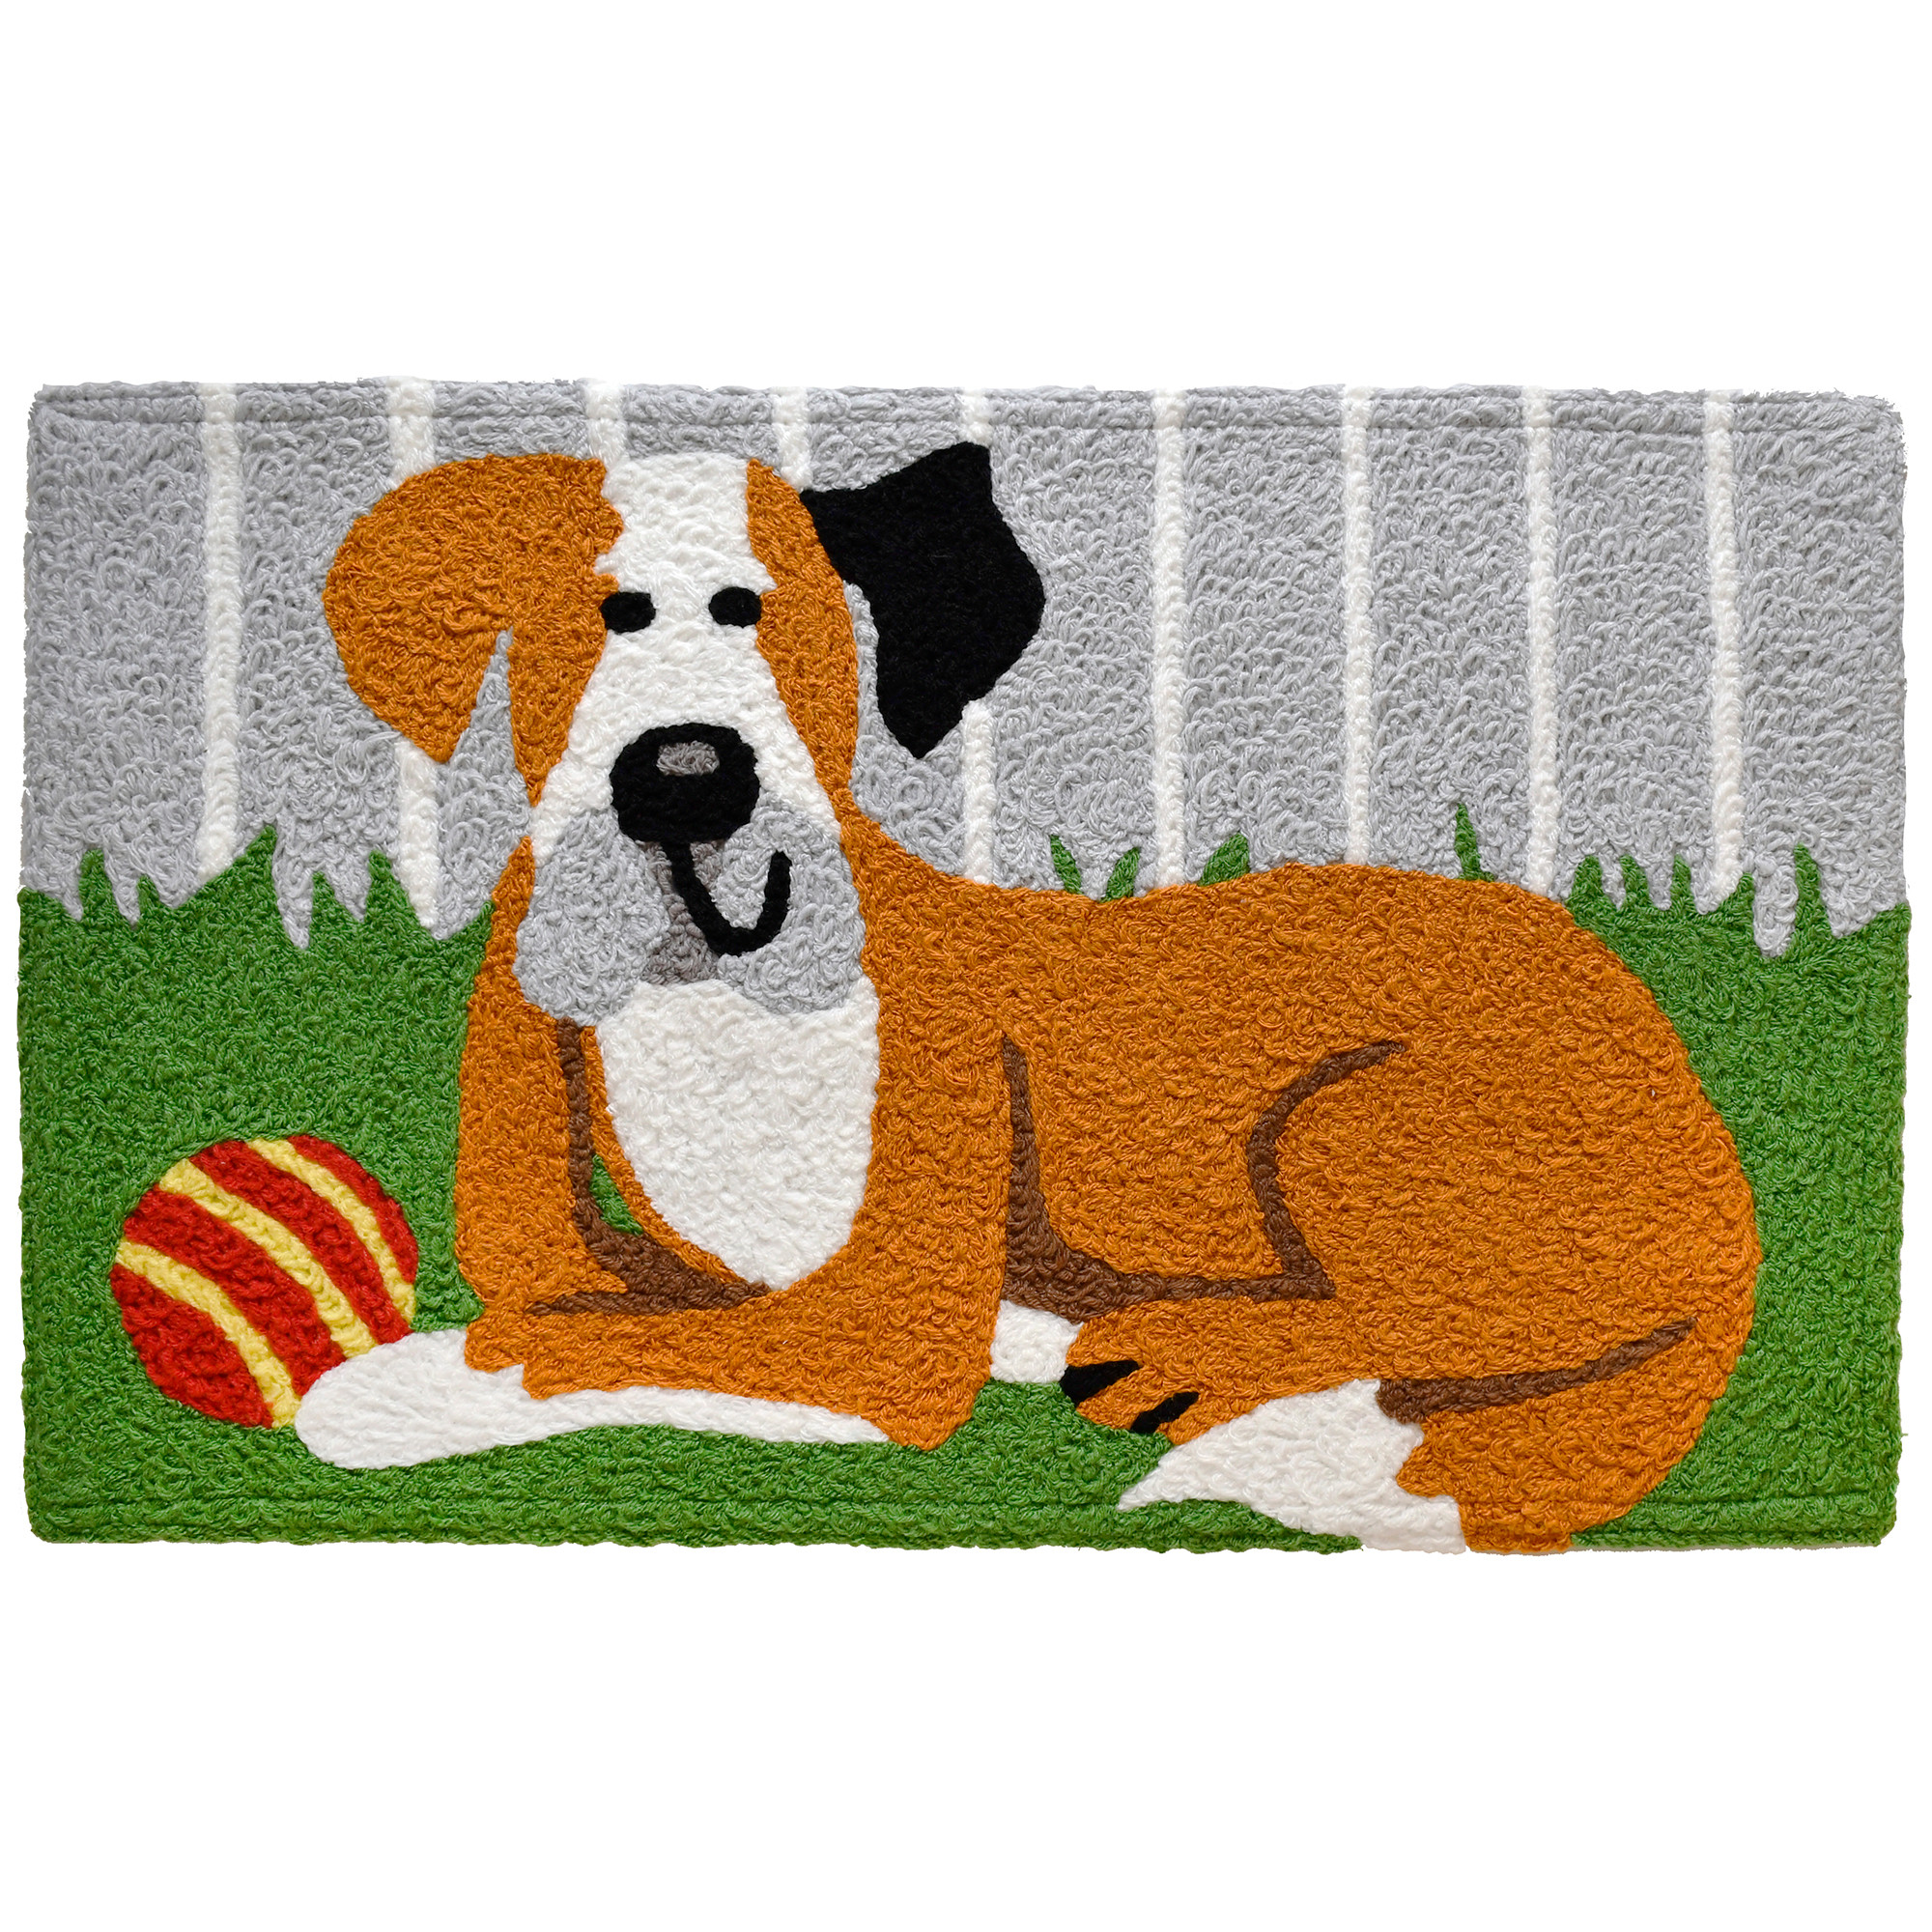 Artist Sarah Frederking has captured the happiness of a hound with his ball with this Jellybean® accent rug. His smile while laying in the cool grass of his back yard will make you smile with just as much delight. This machine washable, indoor/outdoor rug is made of polyester.